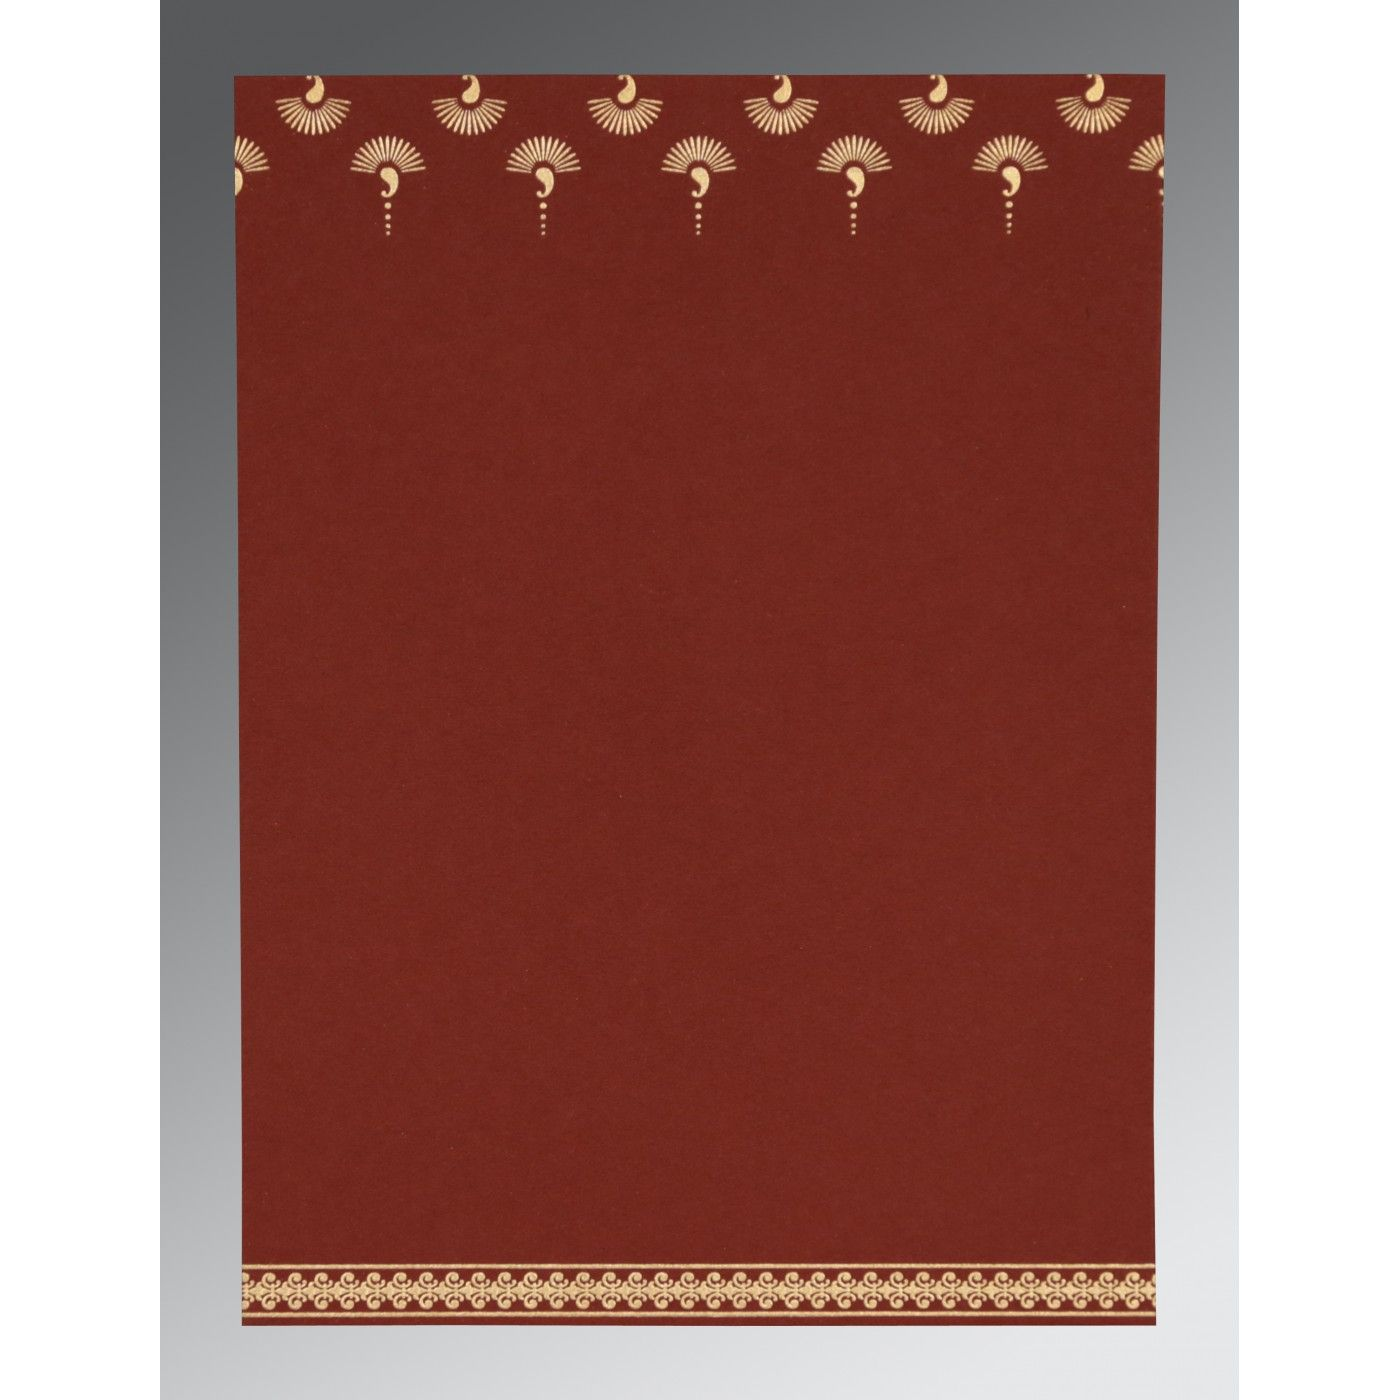 MAROON MATTE SCREEN PRINTED WEDDING INVITATION : CS-8247D - IndianWeddingCards